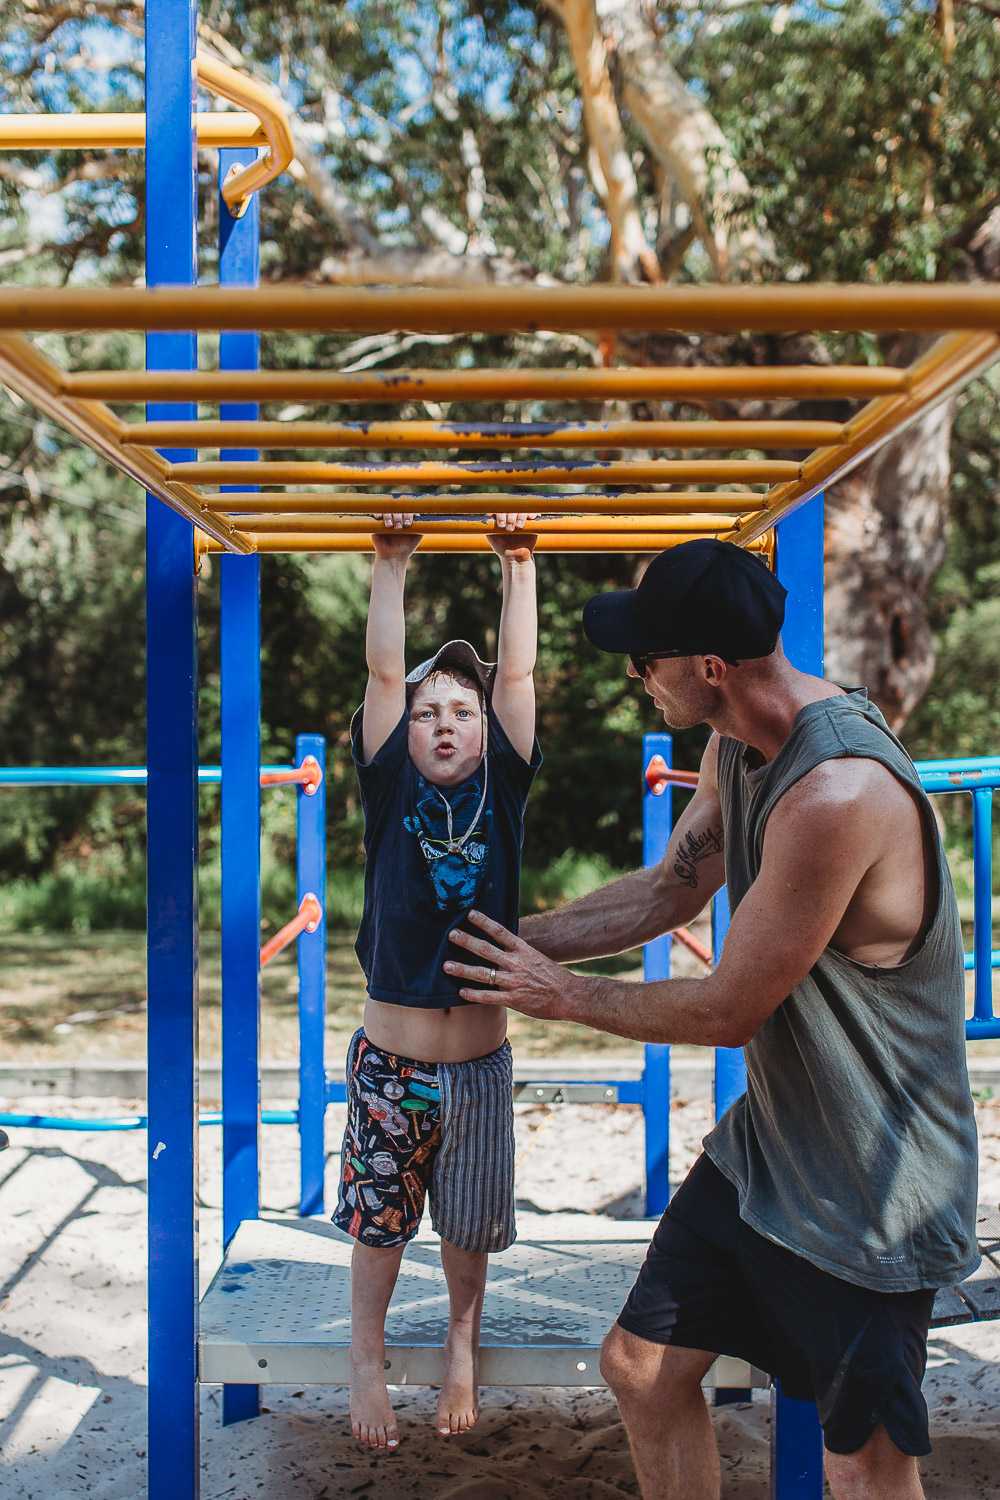 Newcastle family photographer beach summer holiday kids fun at playground